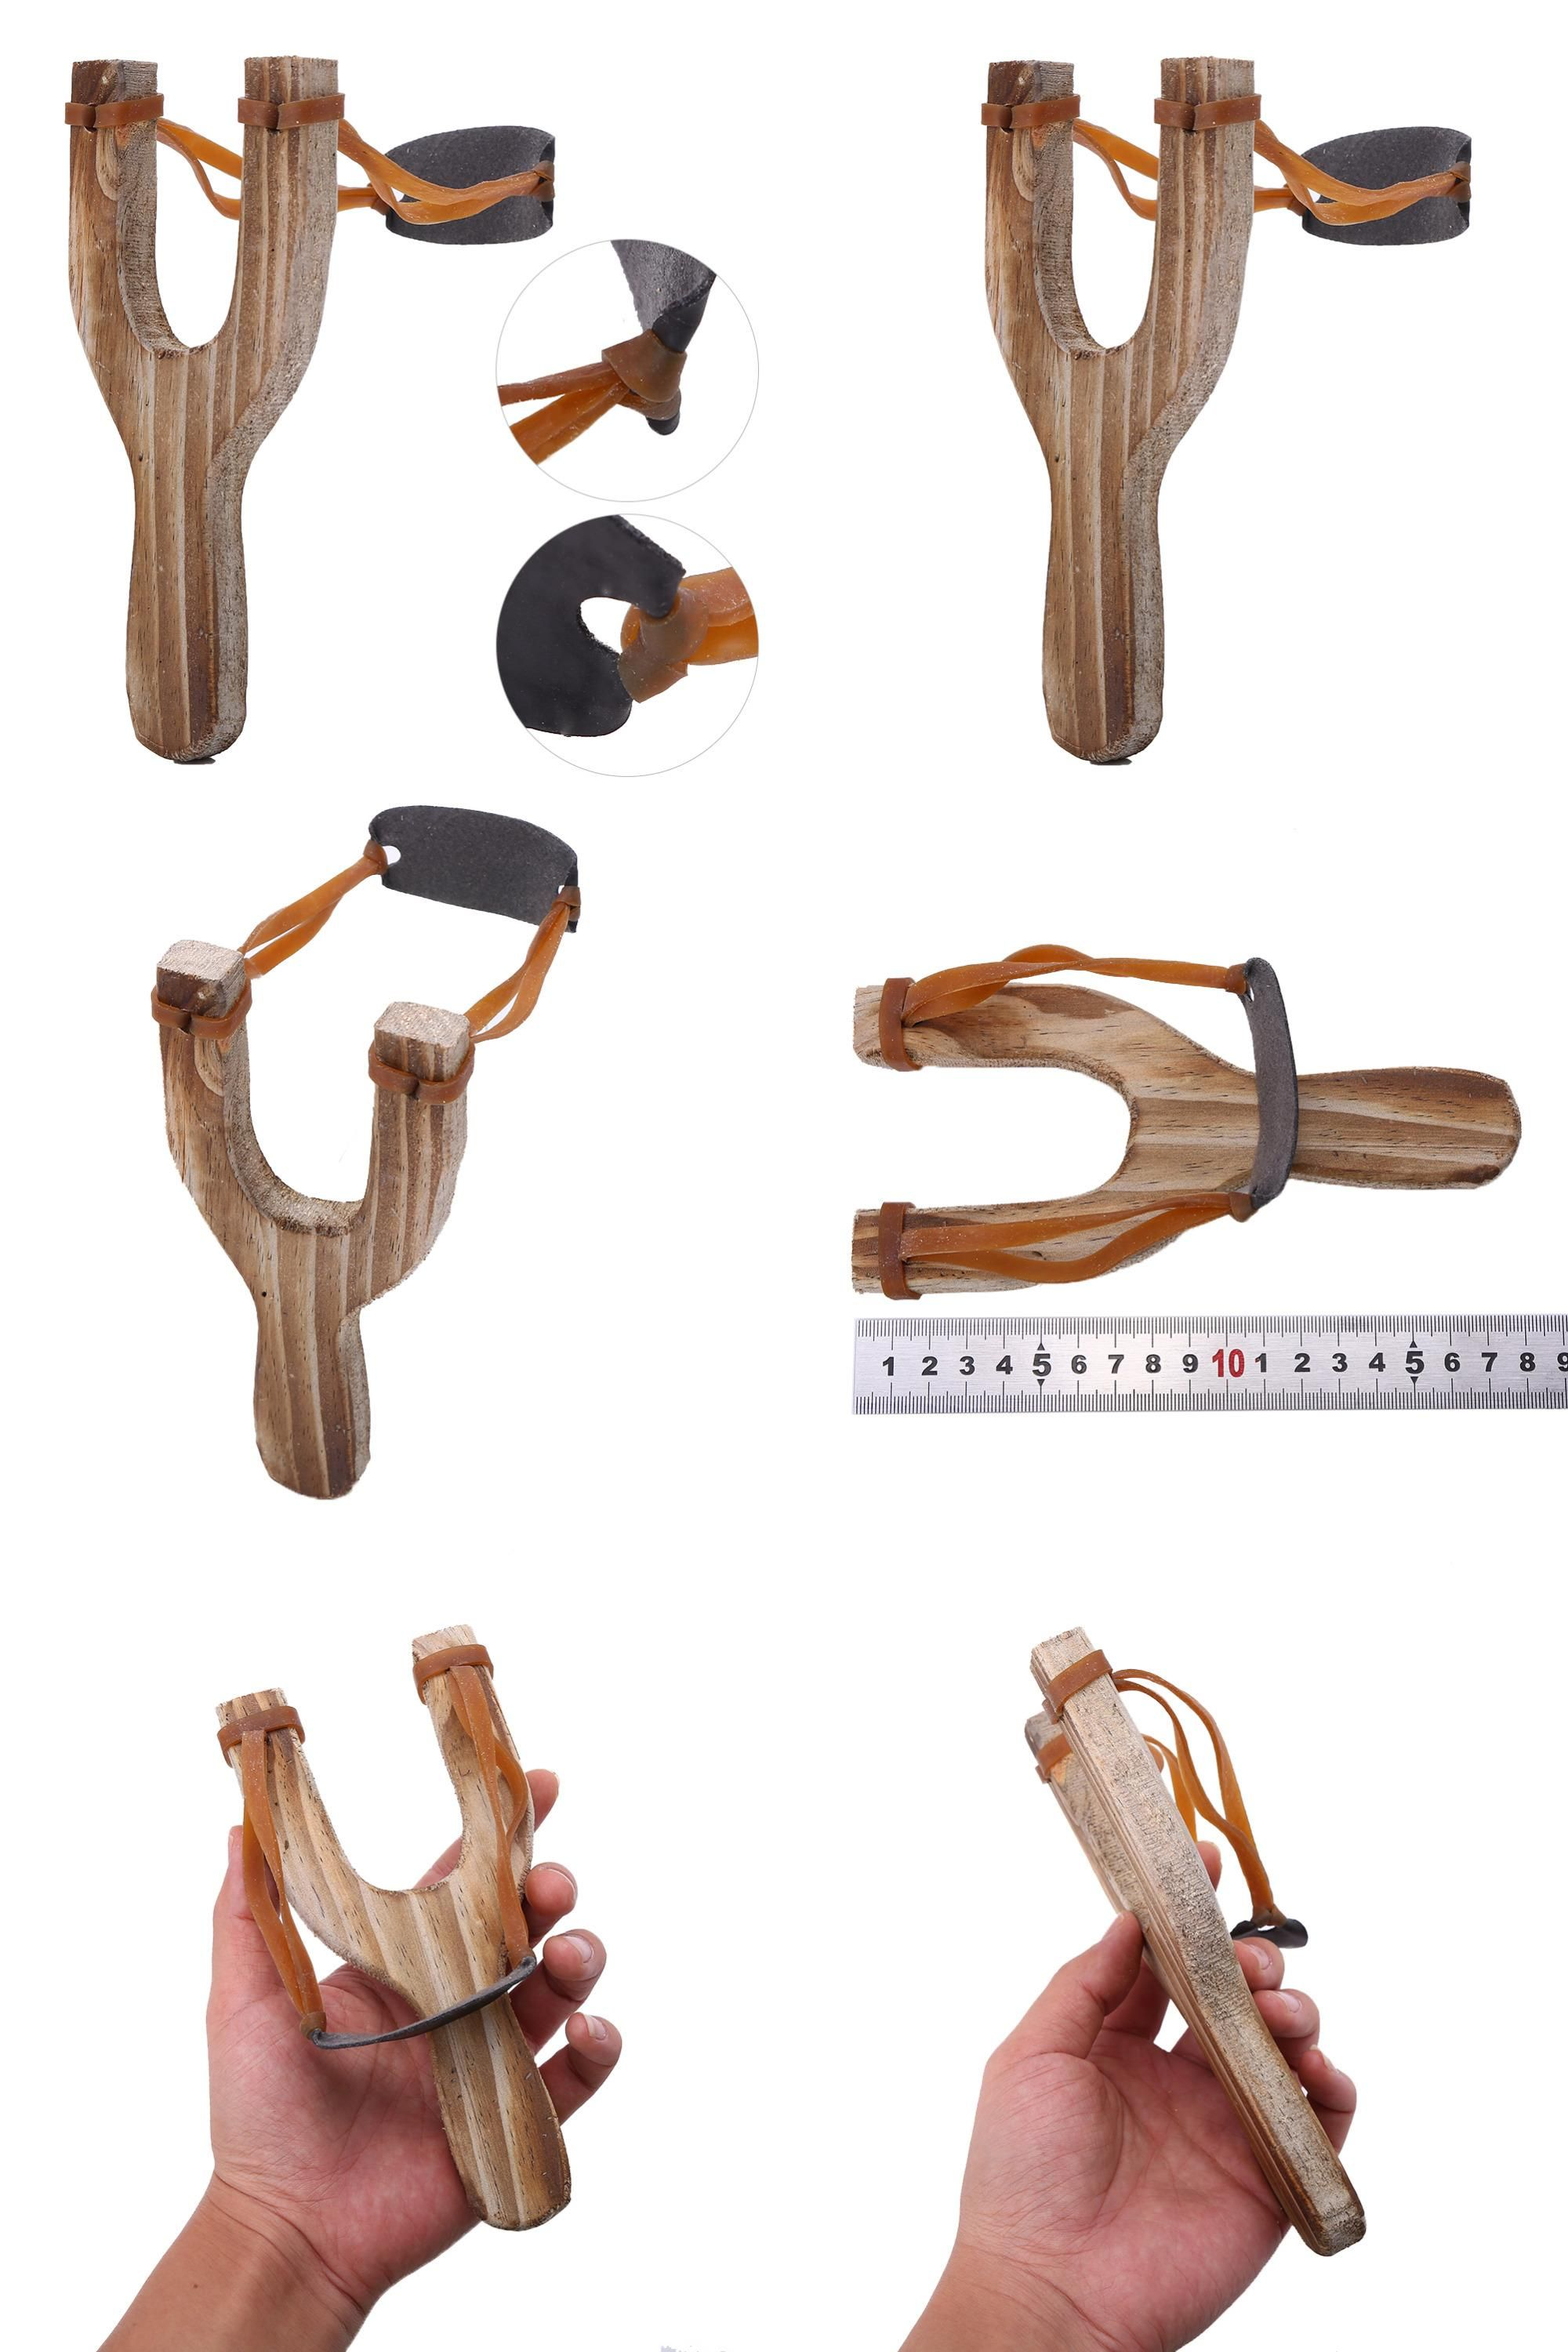 Visit to Buy] 1pcs Powerful Slingshot Sling Shot Wooden Flat